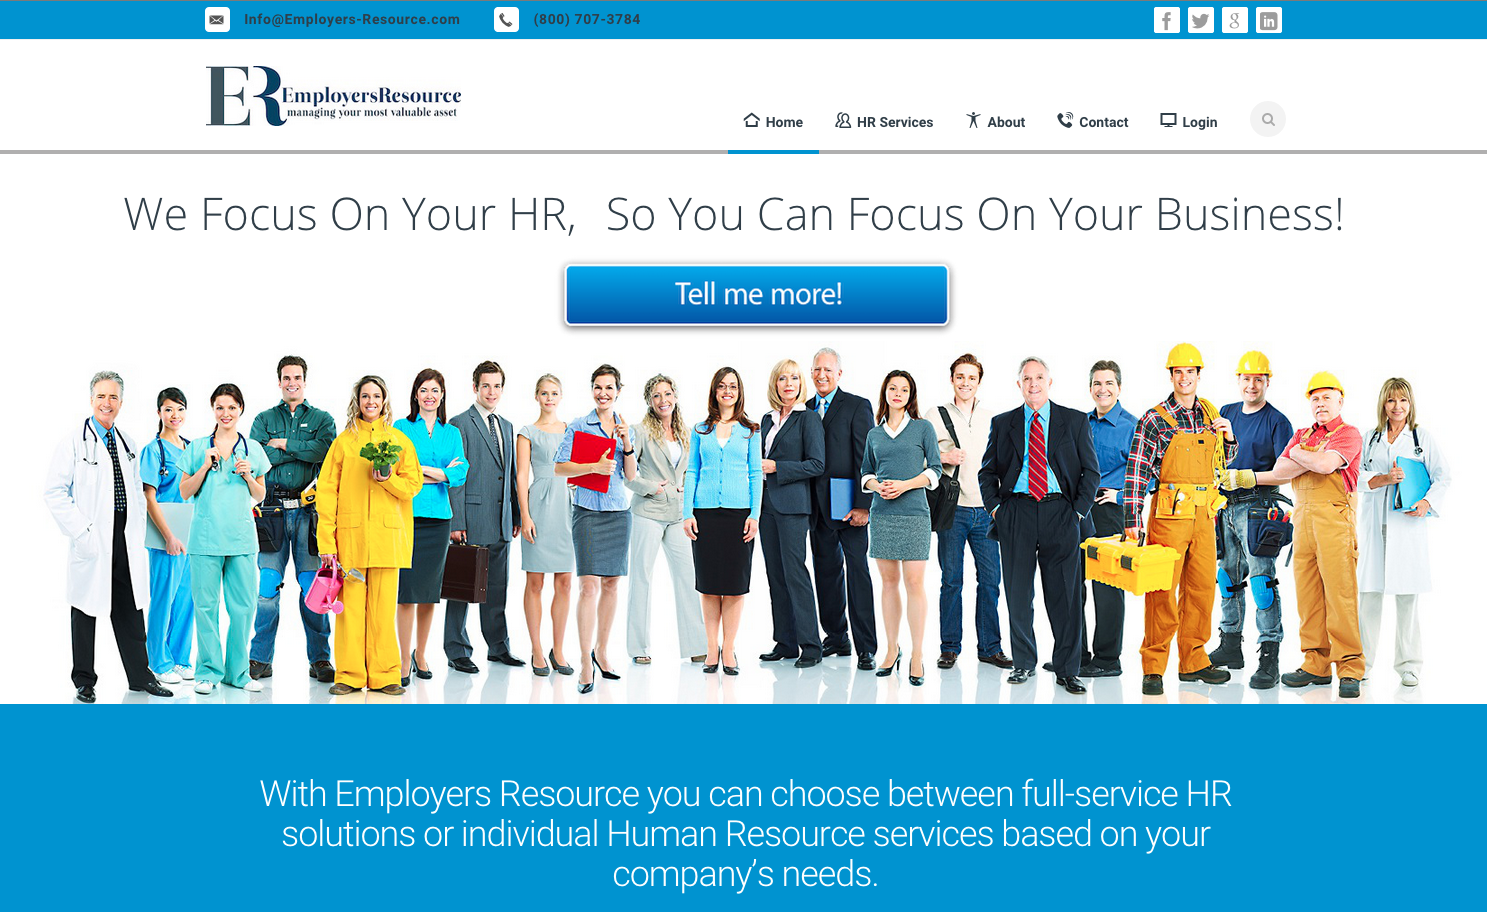 employers-resource.com-webvisiblegroup-project-employers-resource-hr-services